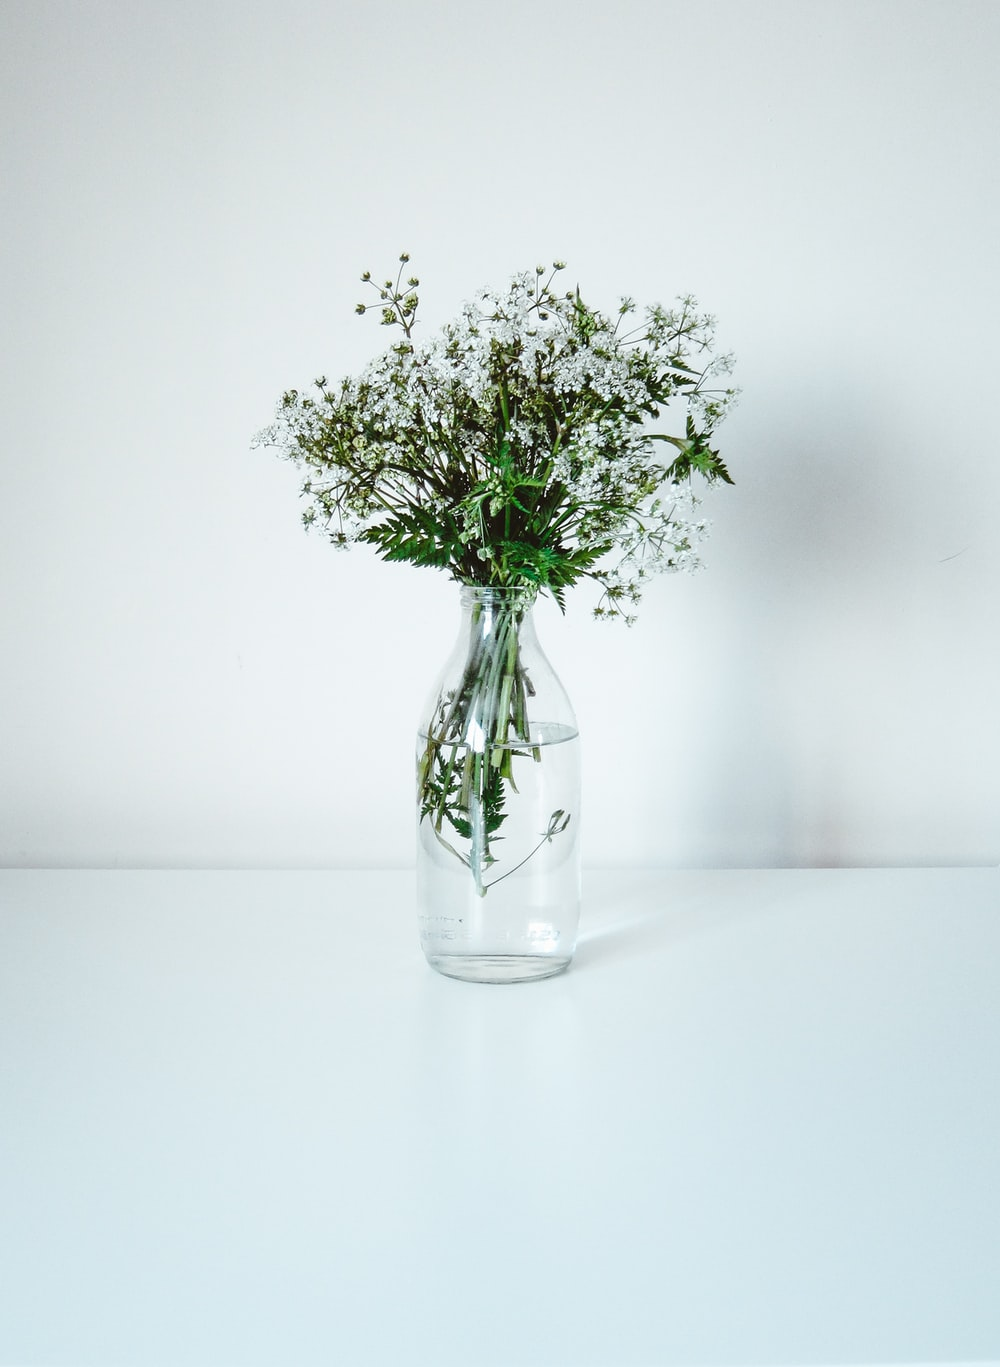 green and white flower in clear glass vase